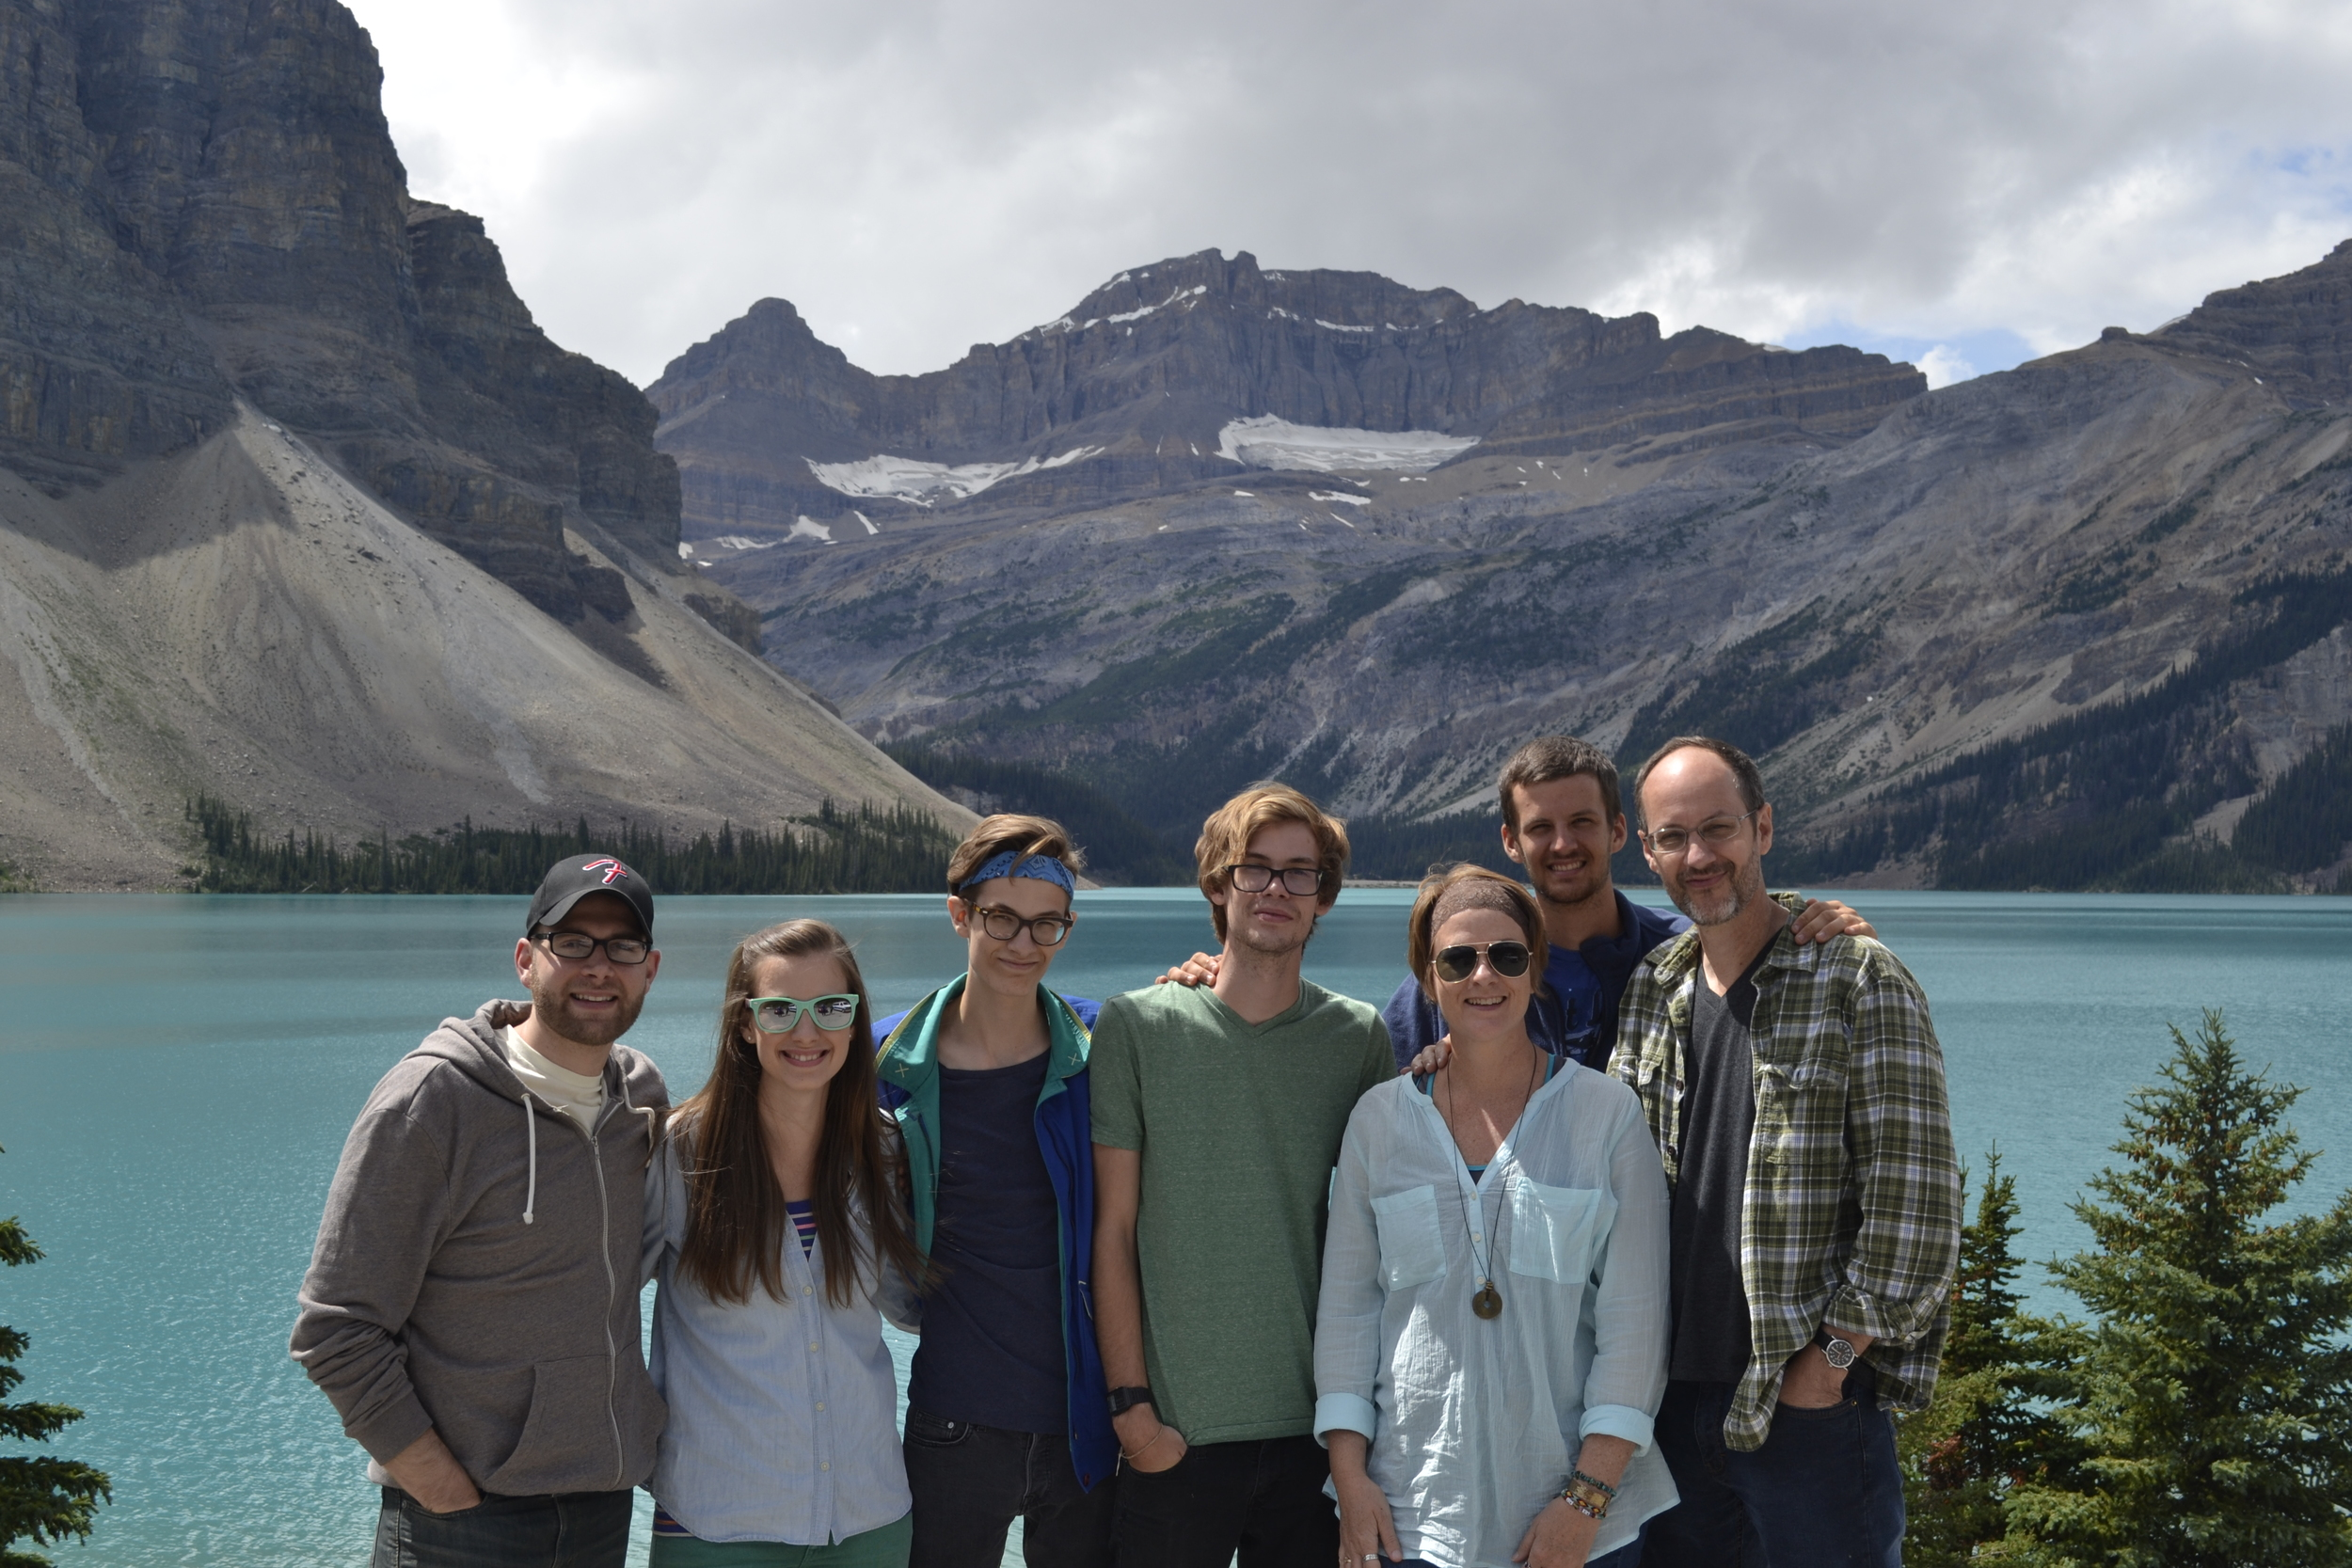 me with my favorite people, Bow Lake, Banff National Park, Canada